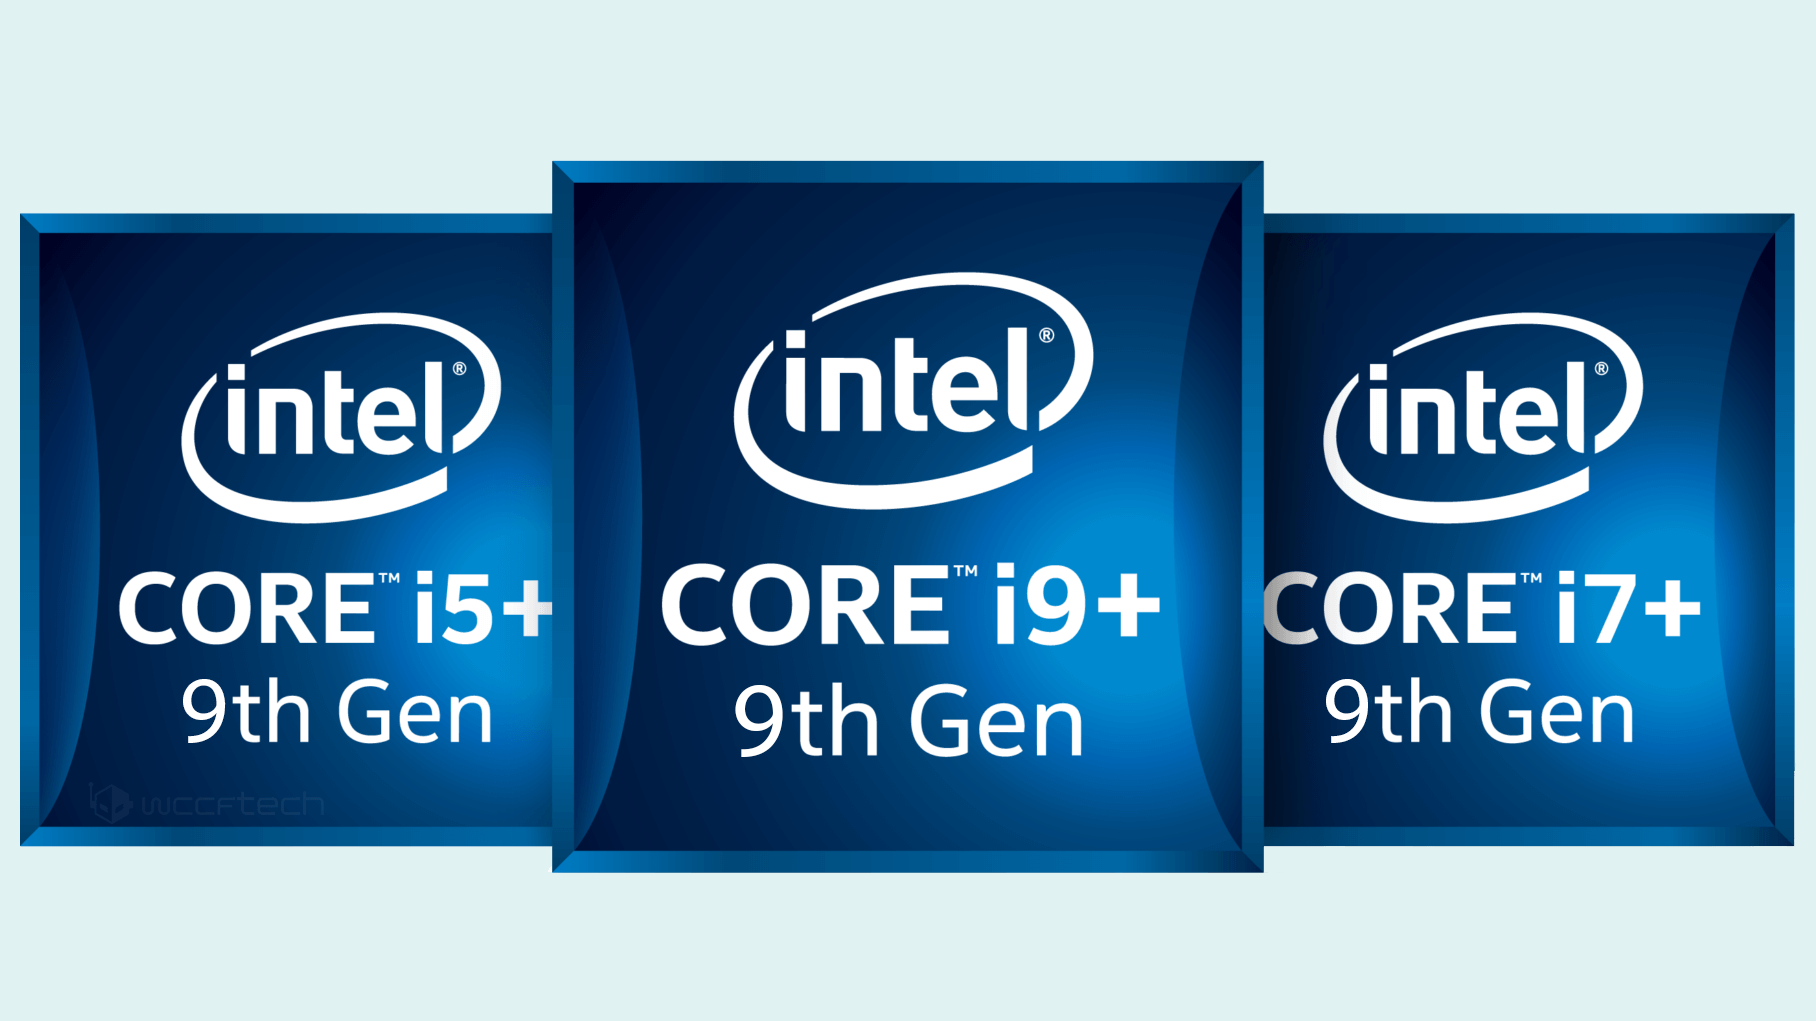 Intel Promo Reduces Up To 25 Percent price on 9th Gen Coffee Lake CPU